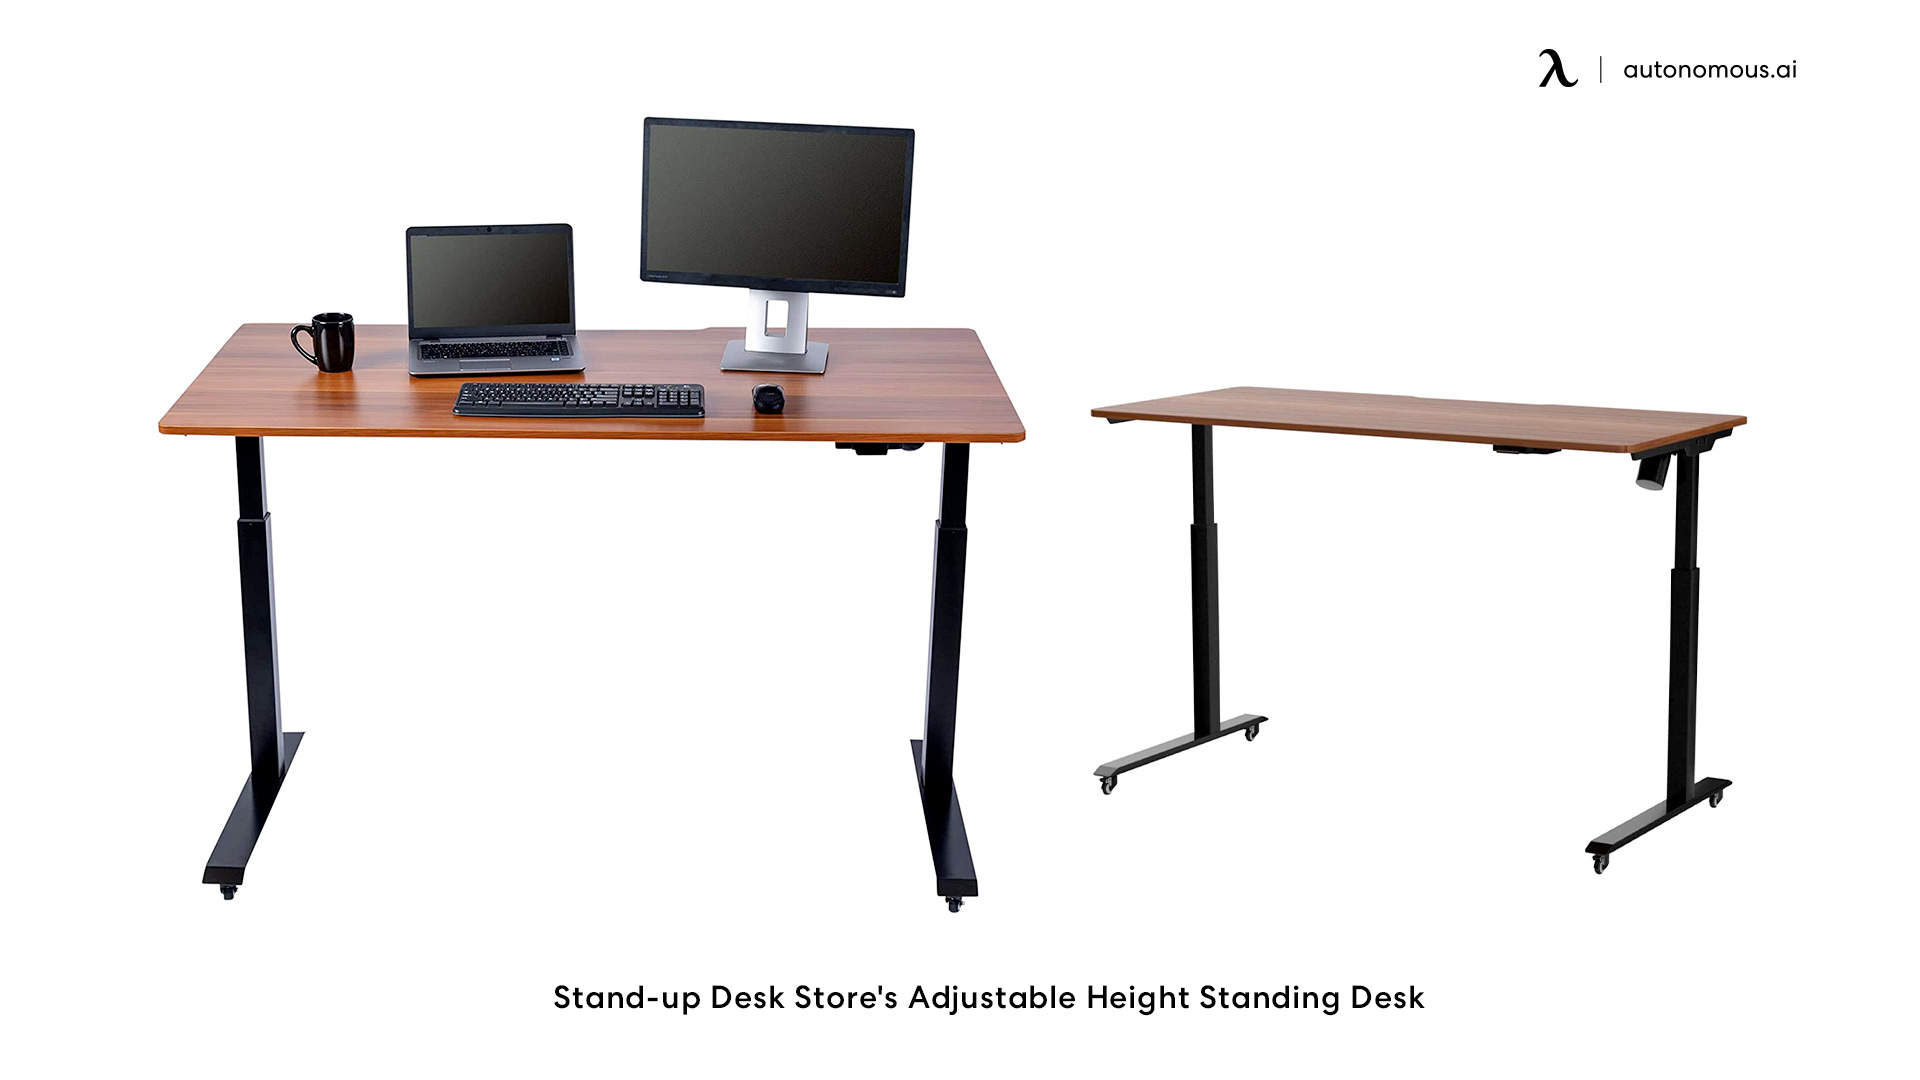 stand-up Desk Store's Height changing desk